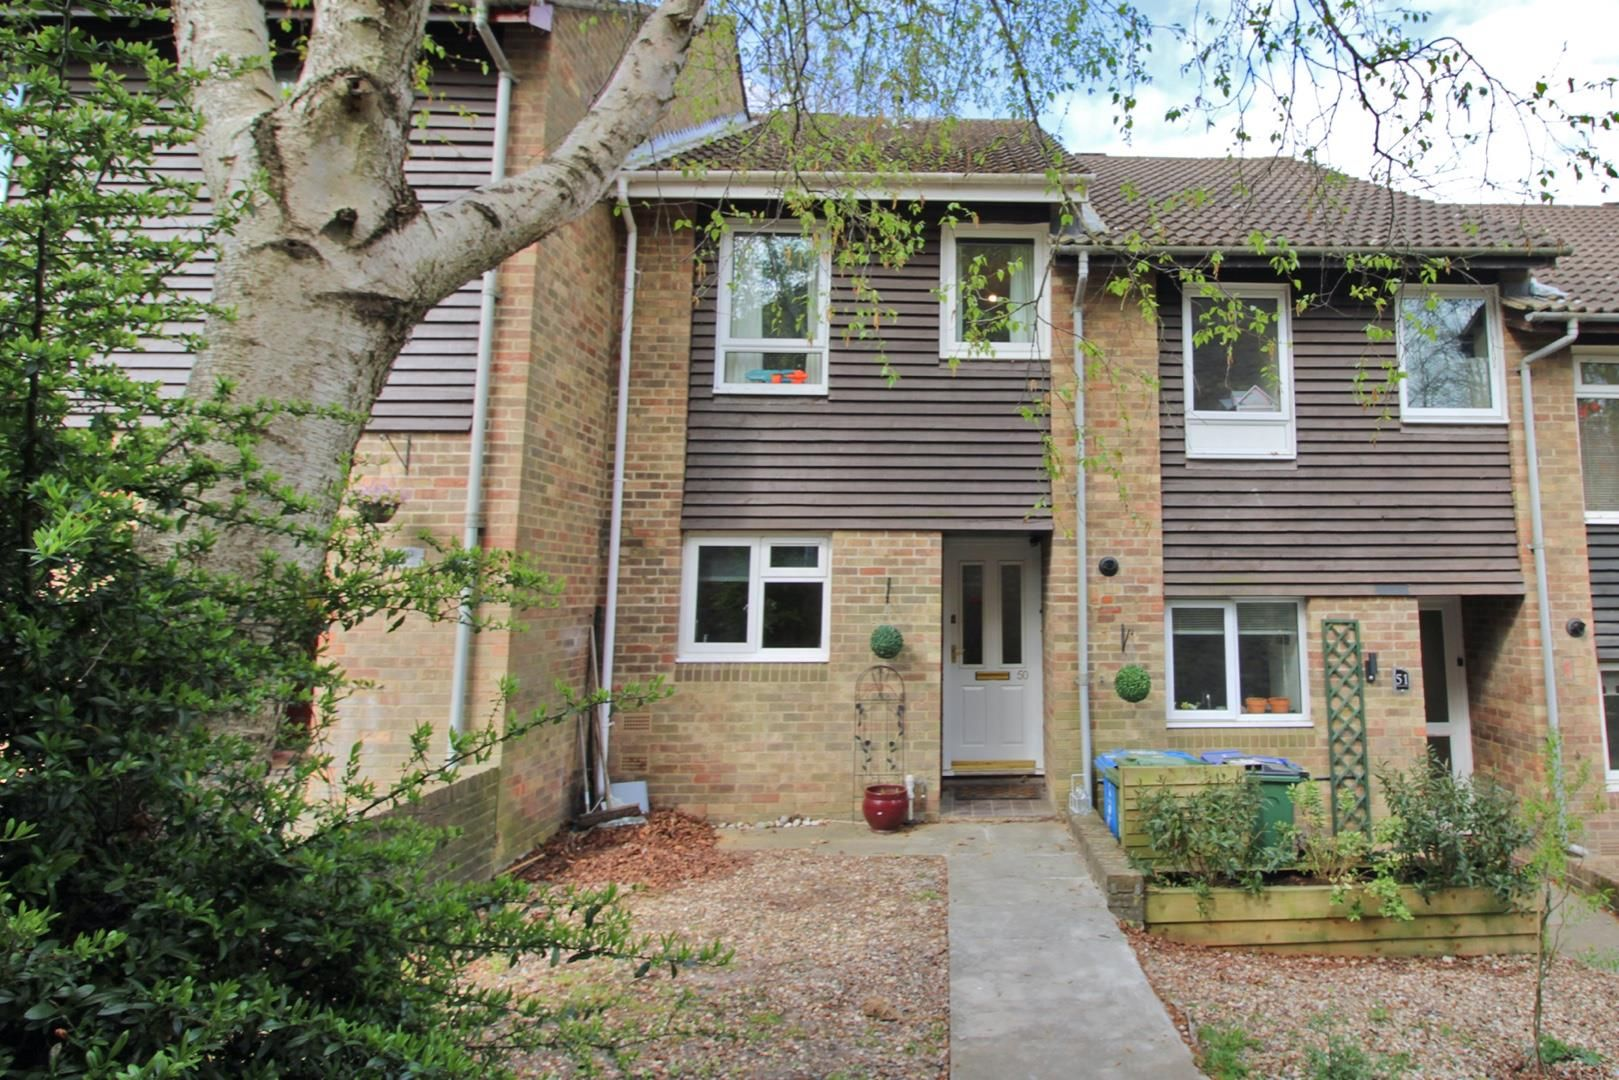 3 bed terraced for sale, RG12